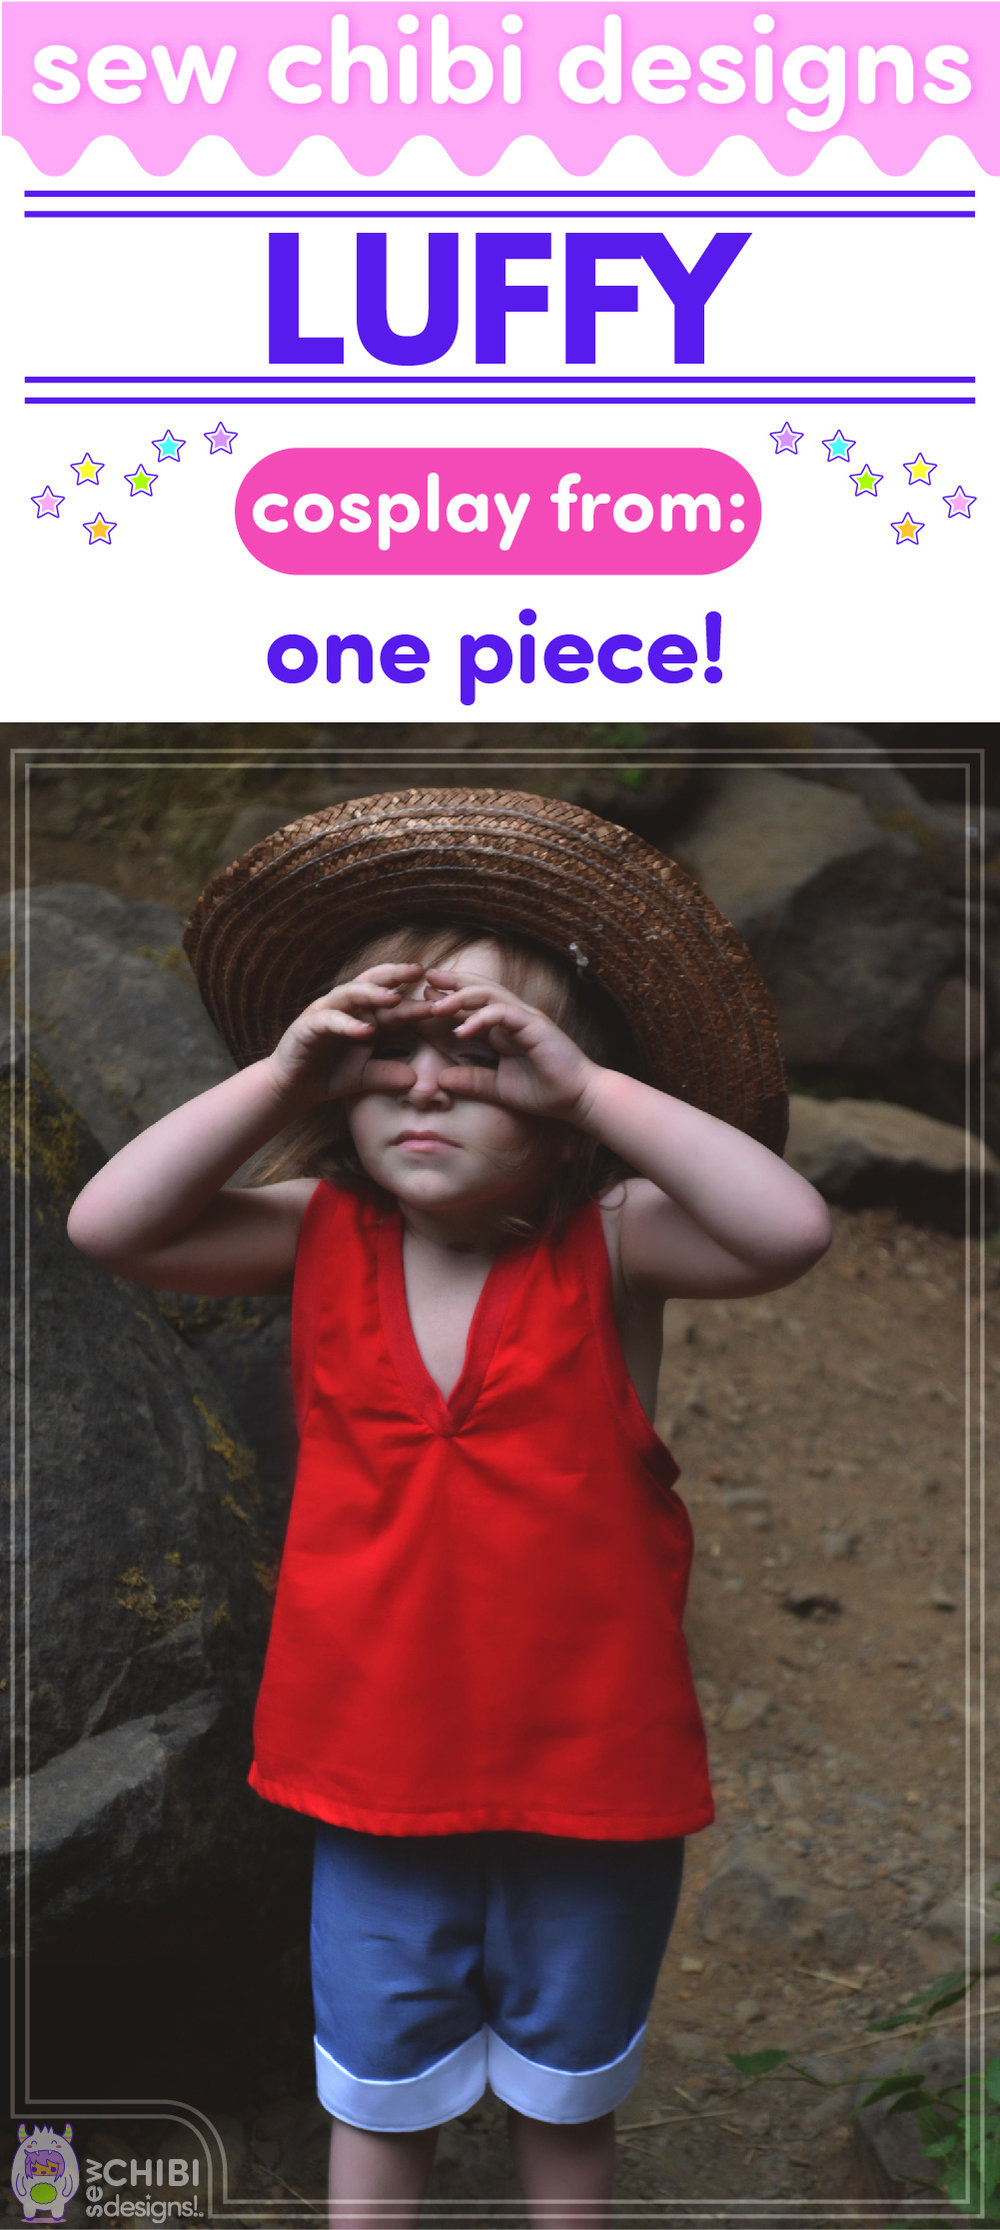 Luffy chibi cosplay from One Piece sewn by Sew Chibi Designs for Classic Anime Sew Geeky